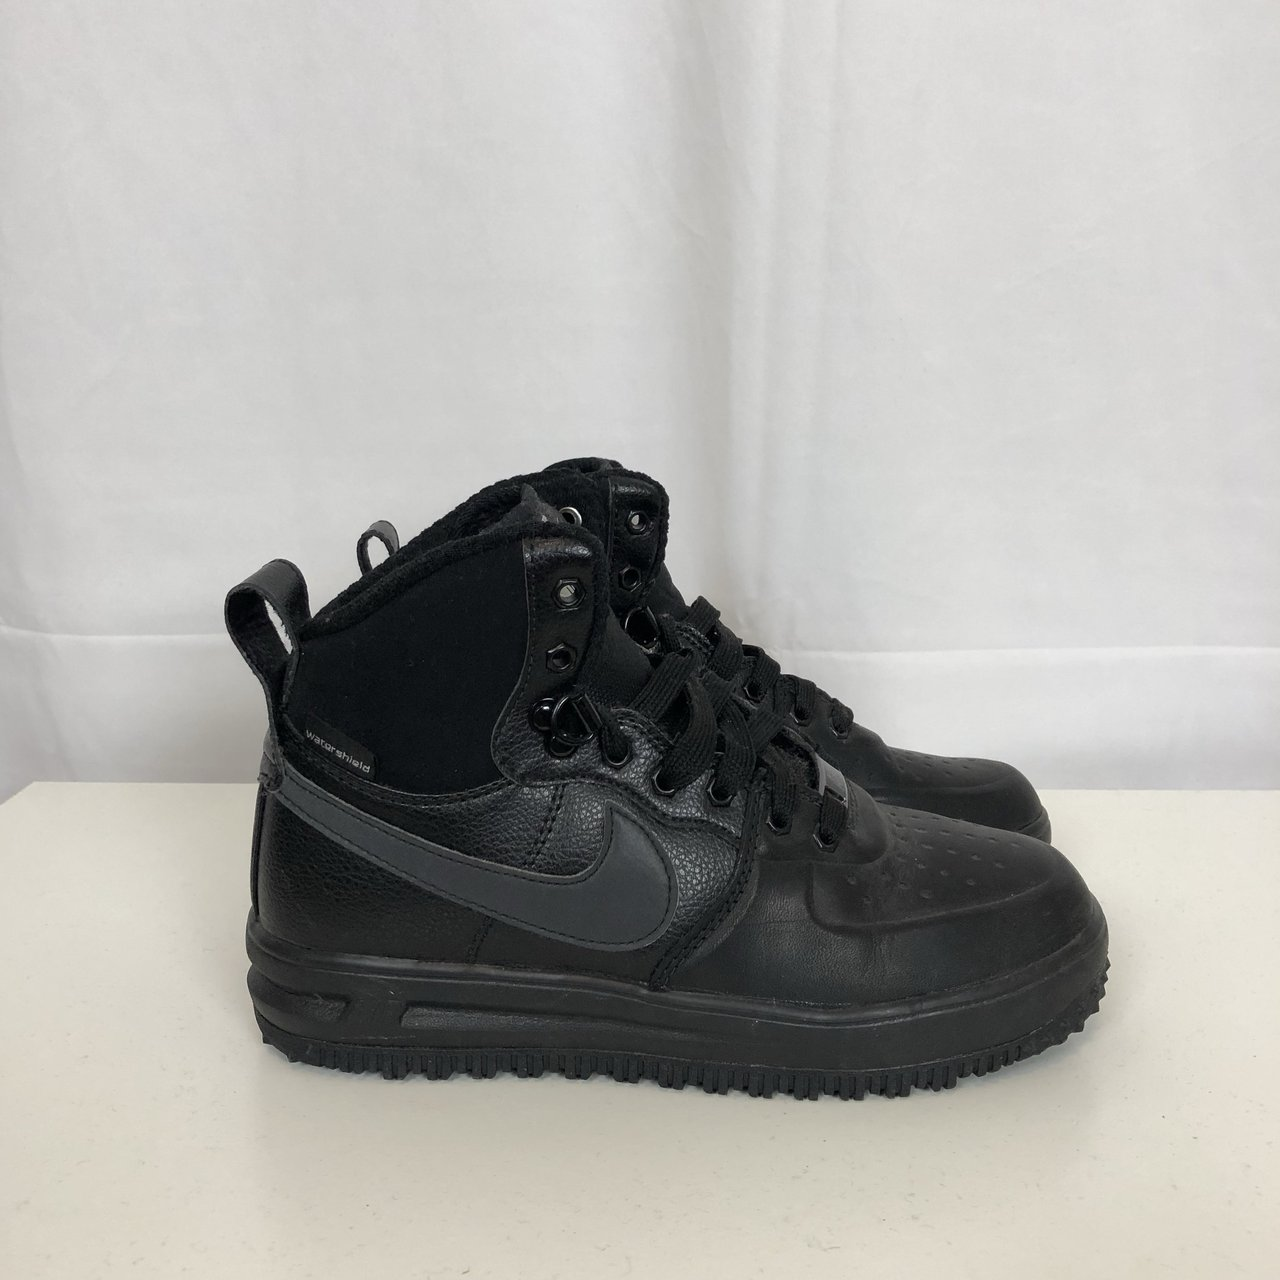 NIKE AIR LUNAR FORCE 1 SNEAKERBOOT WATERPROOF LEATHER     - Depop 86013a0e3a